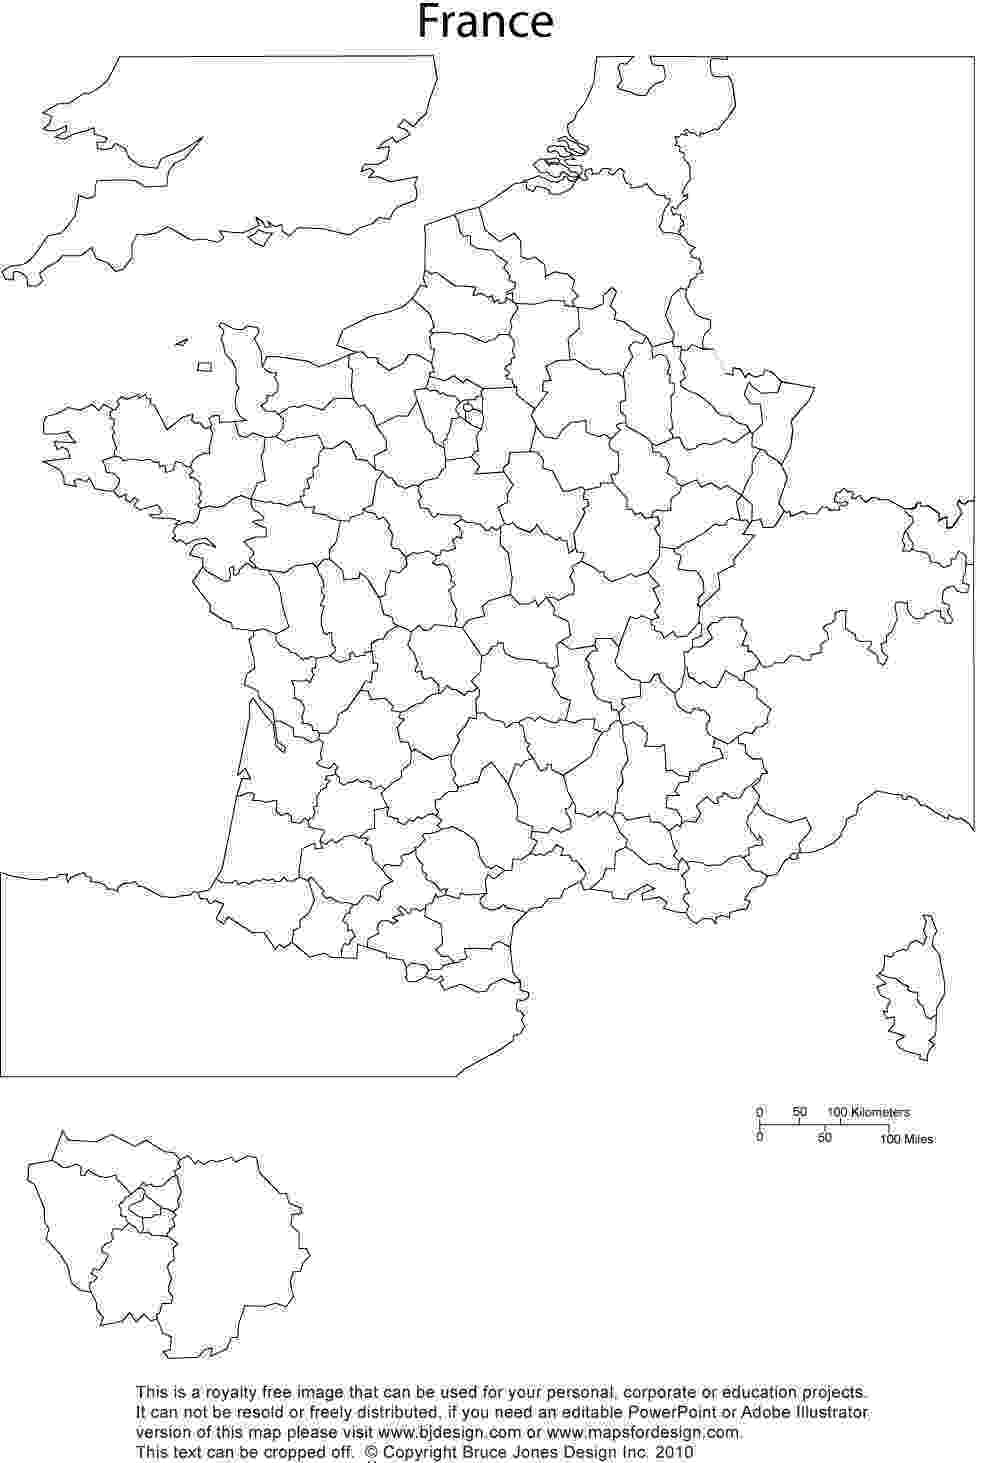 free printable pictures of france france of printable pictures free france